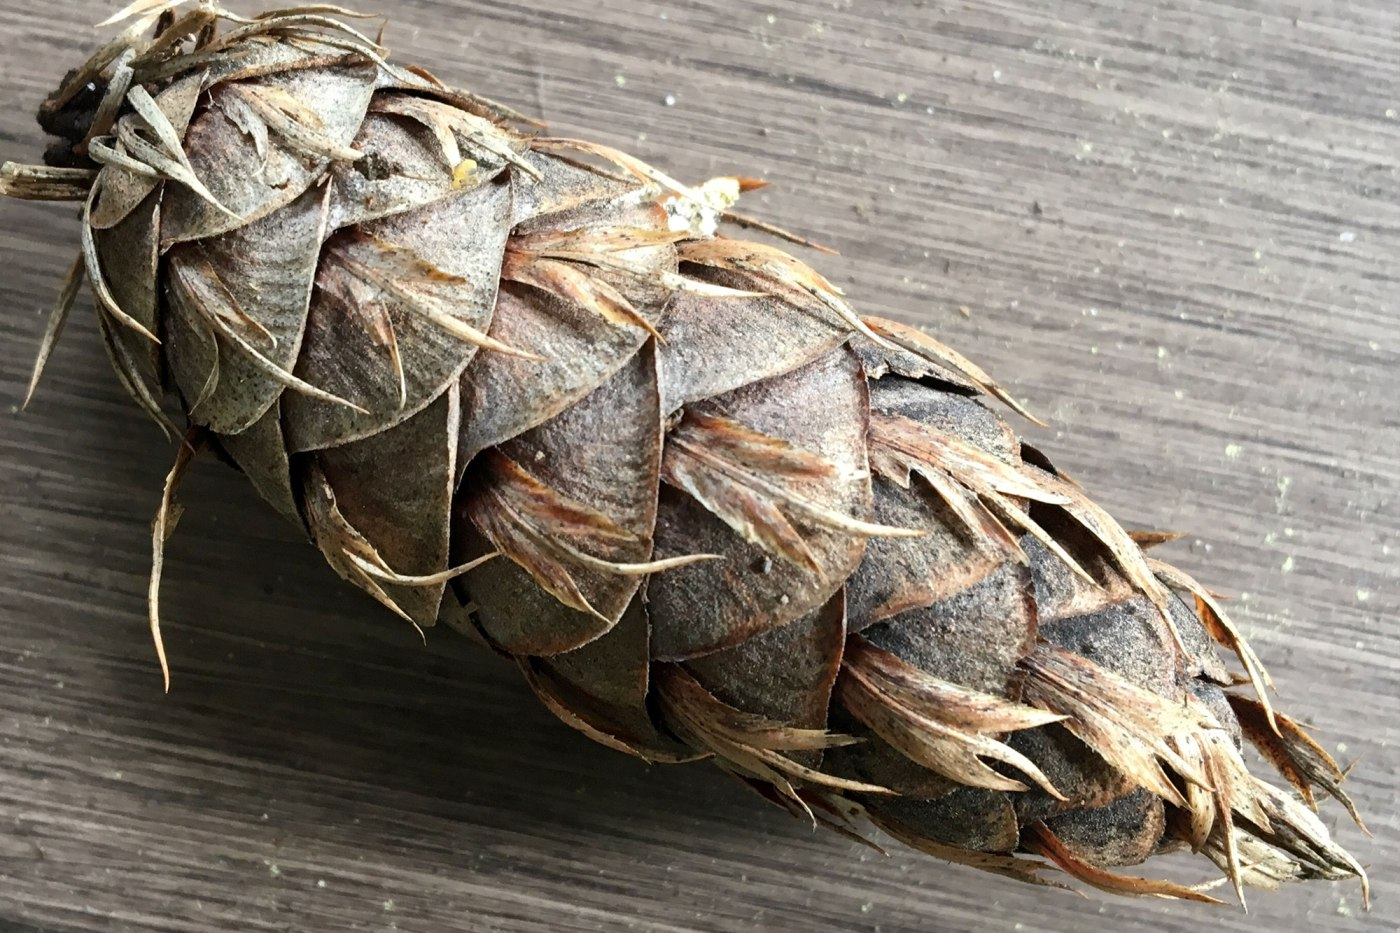 The pinecone we picked _learning what is conifer trees